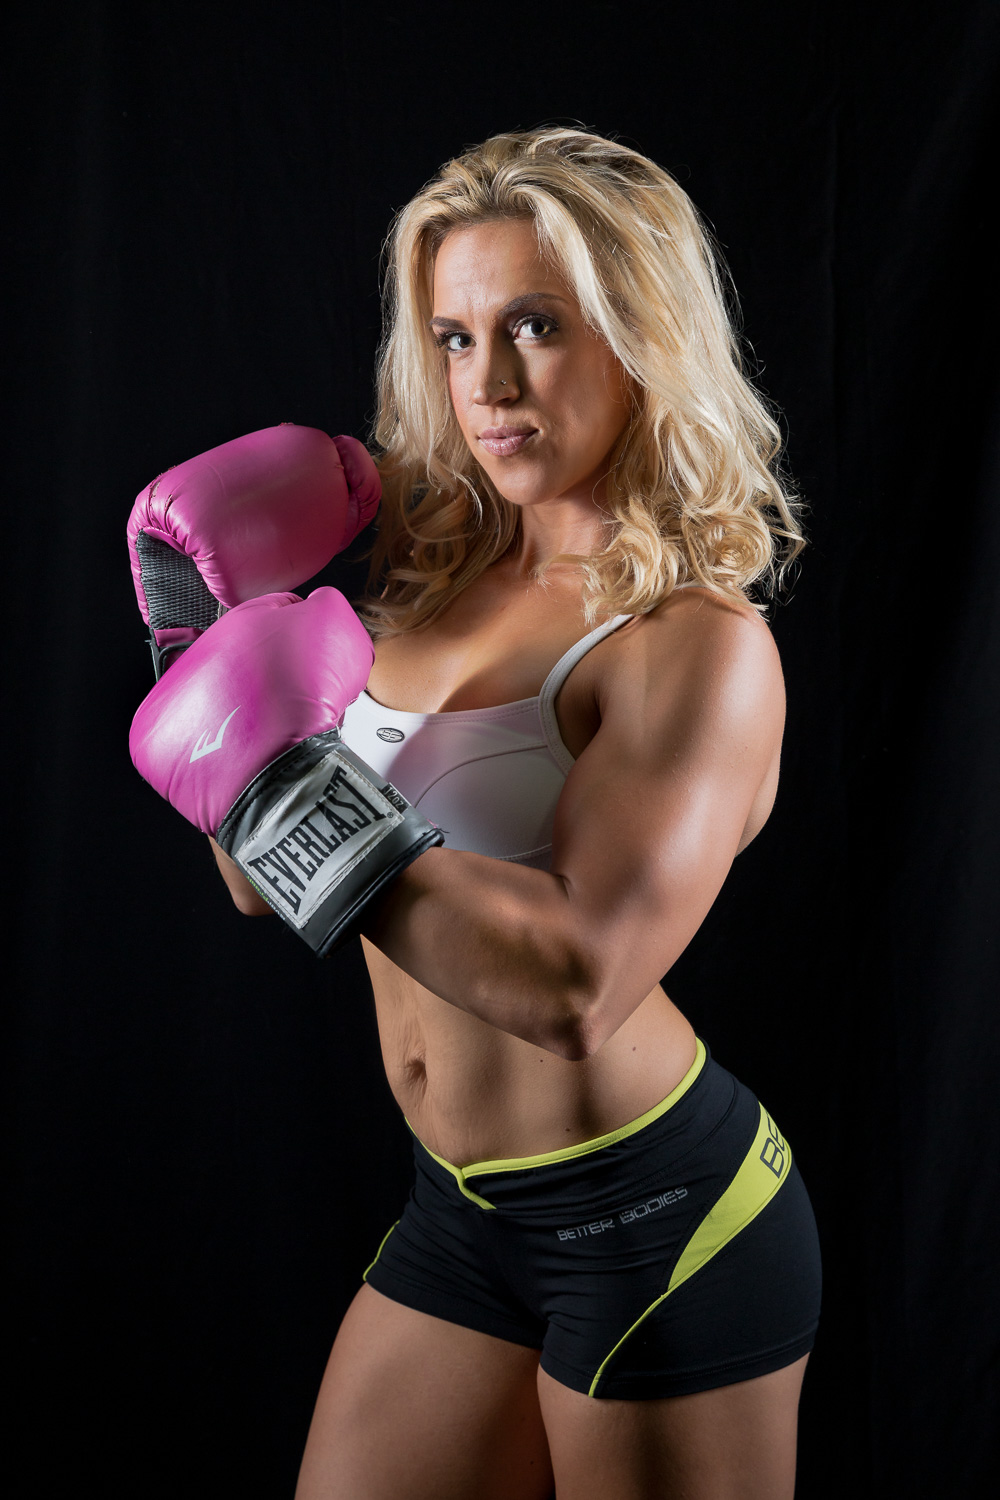 fitness_photography_portrait_pink_boxing_gloves.jpg